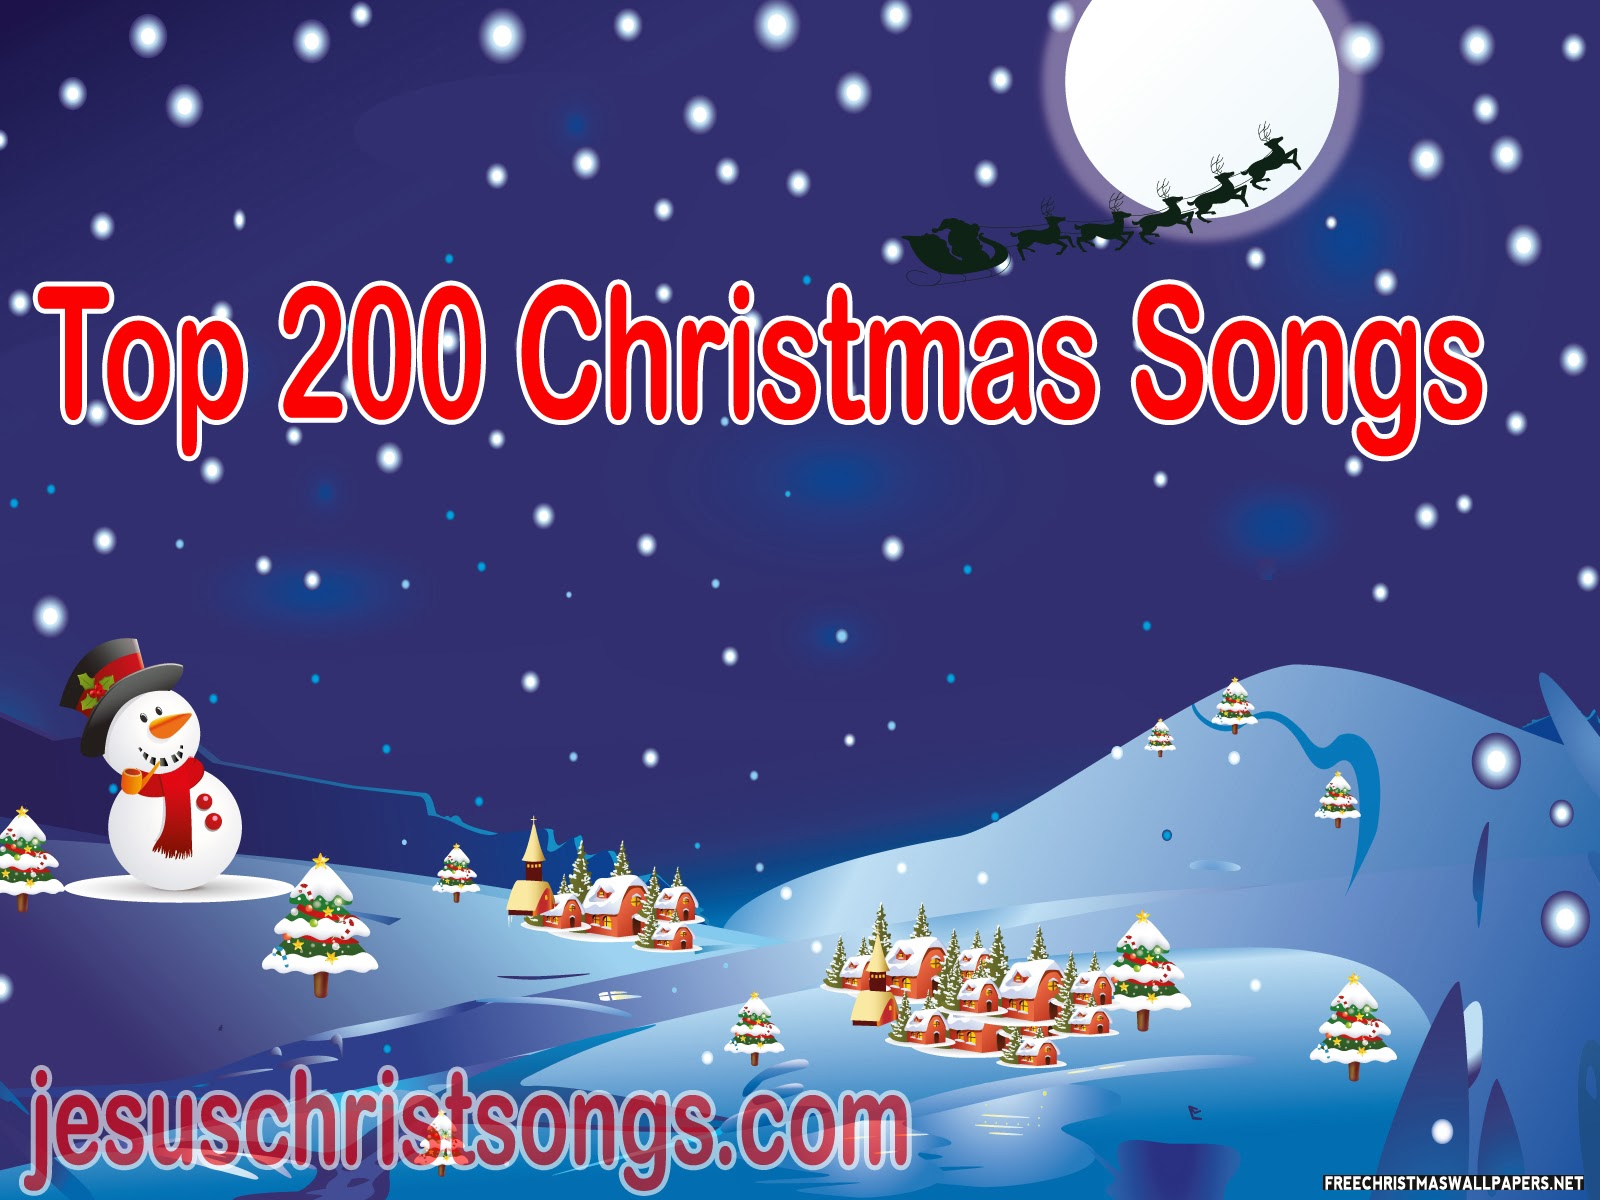 Top 200 Christmas Songs Forever Free Download | Christian Songs ...